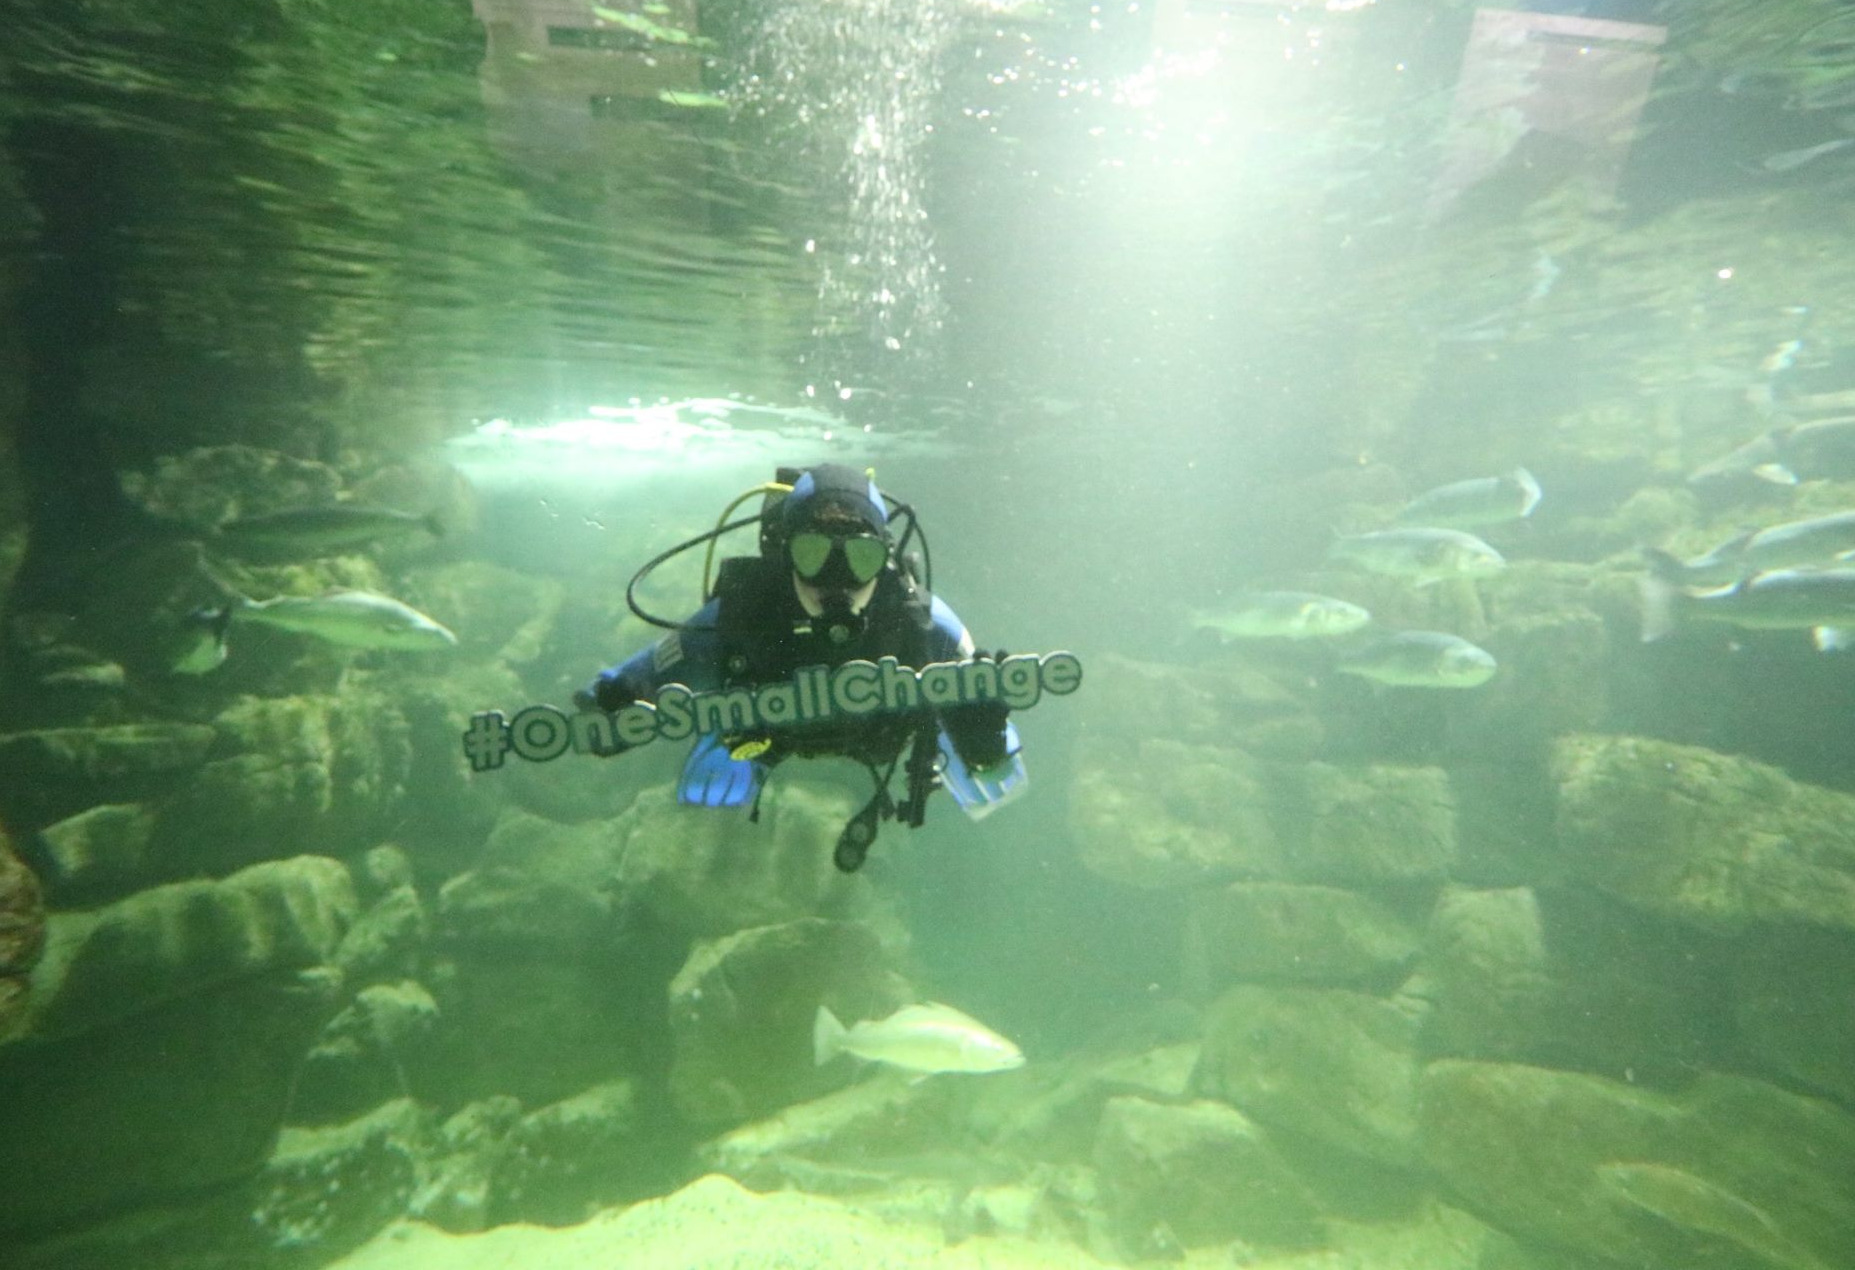 Galway Atlantaquaria - YourDaysOut